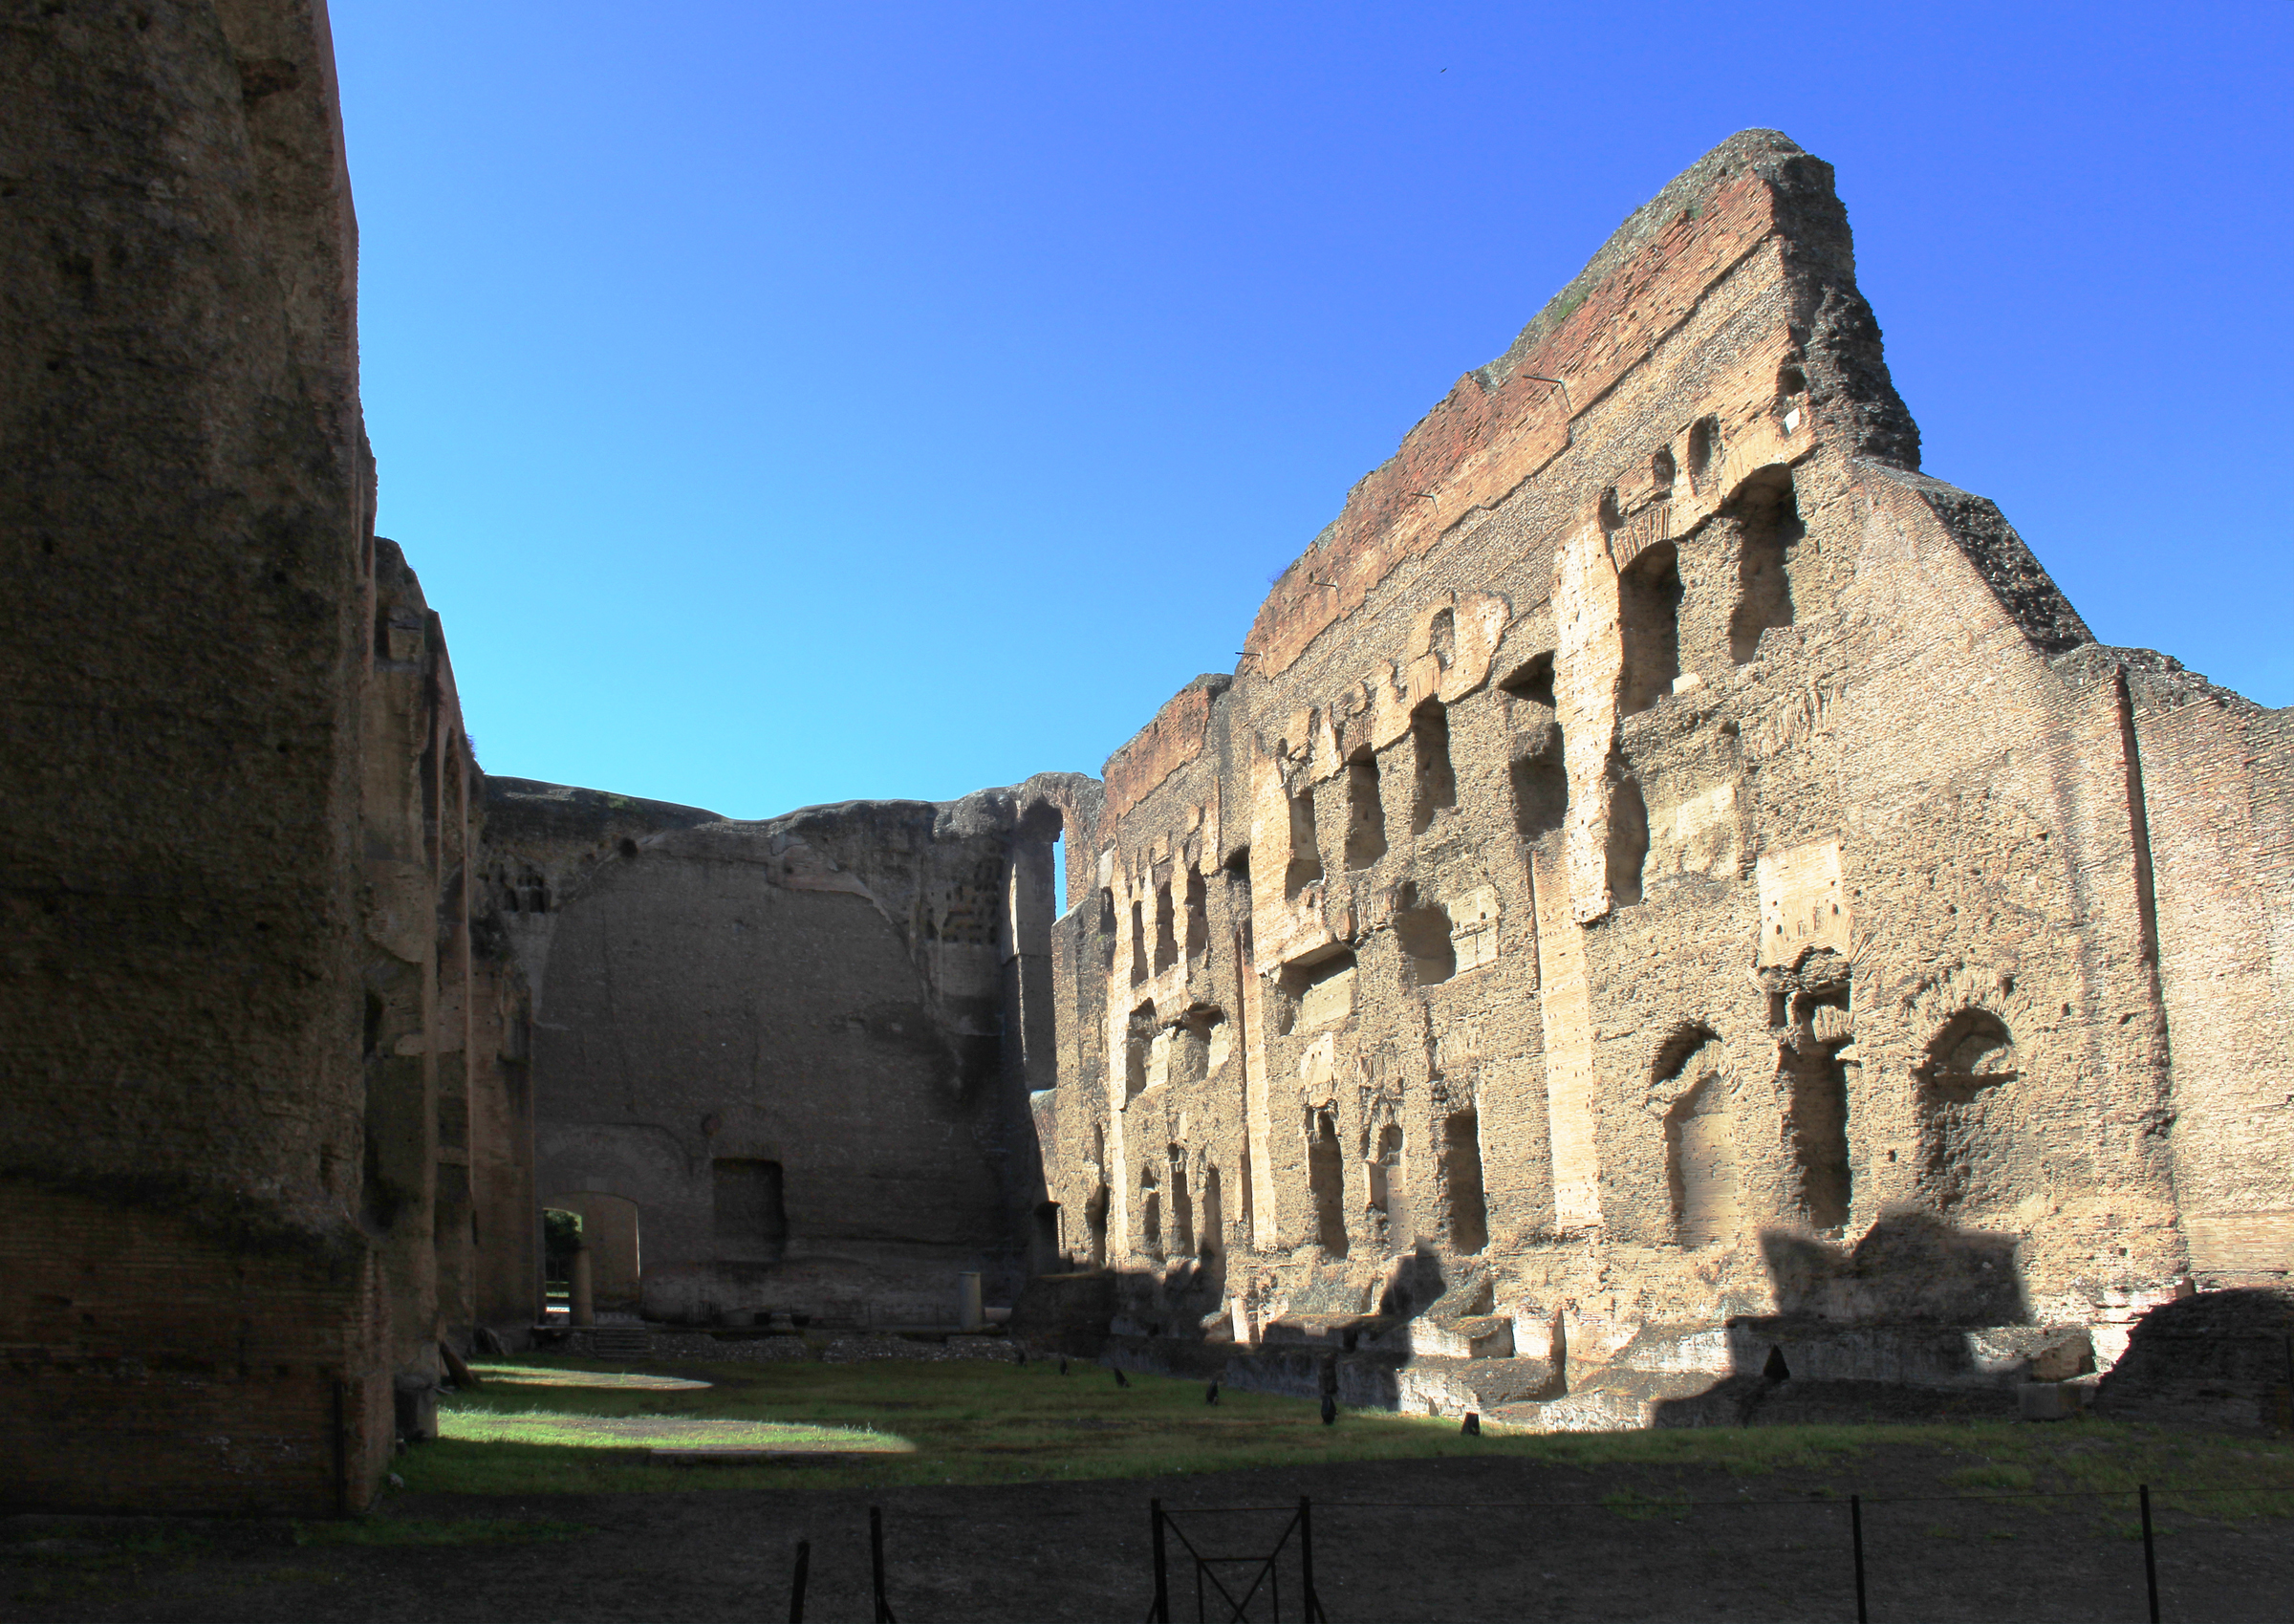 a history and function of the baths of caracalla in rome The baths of caracalla in the southern area of rome are perhaps the best preserved of all roman baths and were second only in size to trajan's baths of rome (c 110 ce) they were also the most sumptuous and luxurious roman baths ever built.